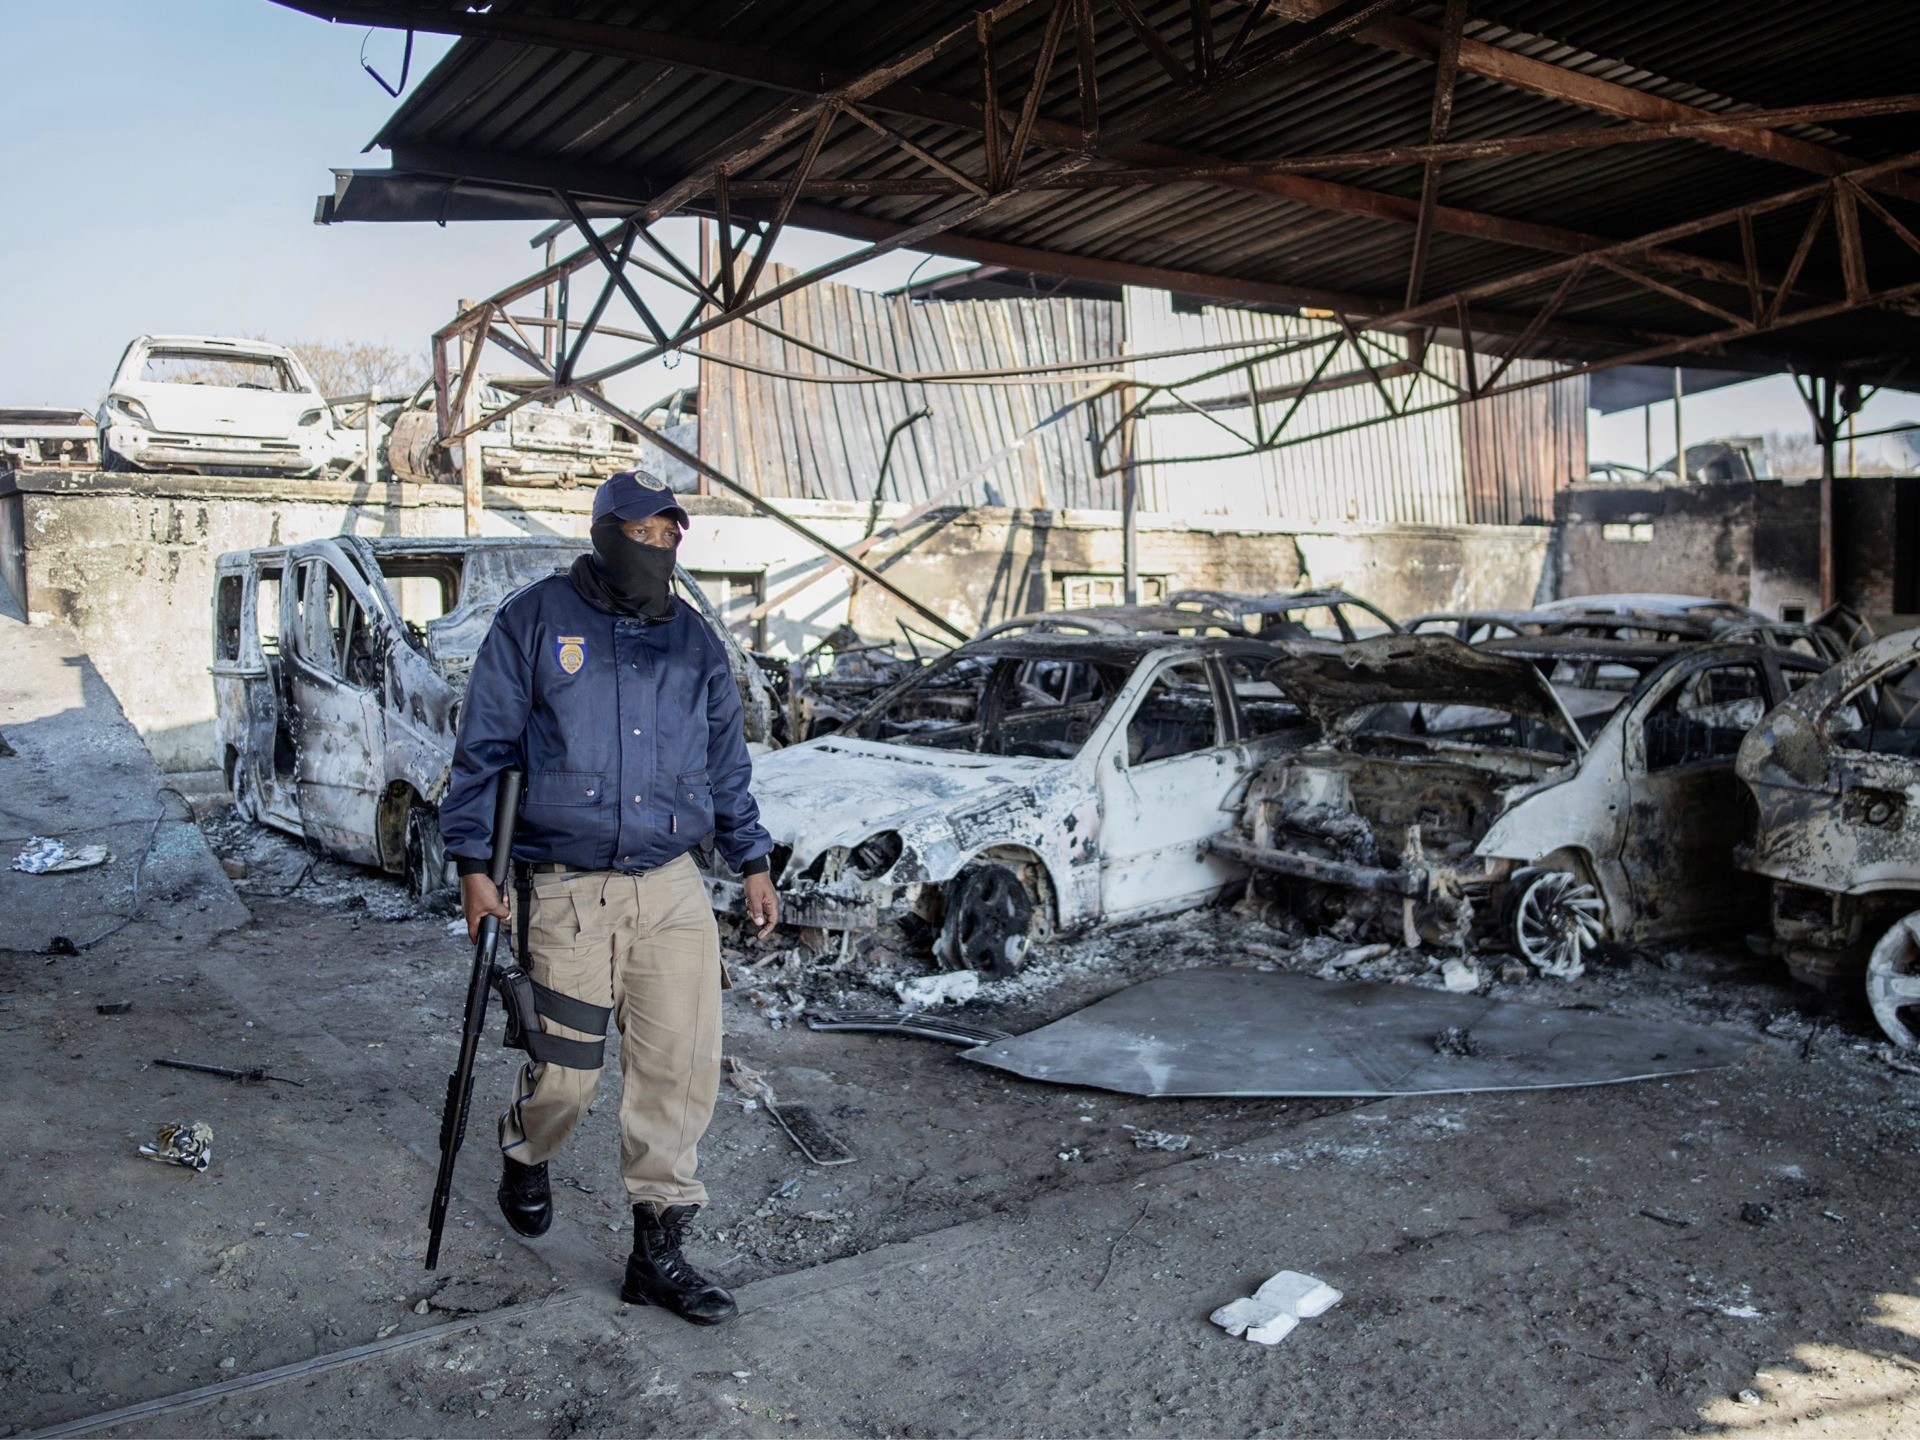 A Johannesburg Metro Police Department (JMPD) officer walks past the wreckage of burnt cars at a car showroom in Jeppestown district, Johannesburg, on July 11, 2021. - Several shops are damaged and cars burnt in Jeppestown, Johannesburg, following a night of violence. Police are on the scene trying to control further protests. It is unclear if this is linked to sporadic protests following the incarceration of former president Jacob Zuma. (Photo by LUCA SOLA / AFP) (Photo by LUCA SOLA/AFP via Getty Images)